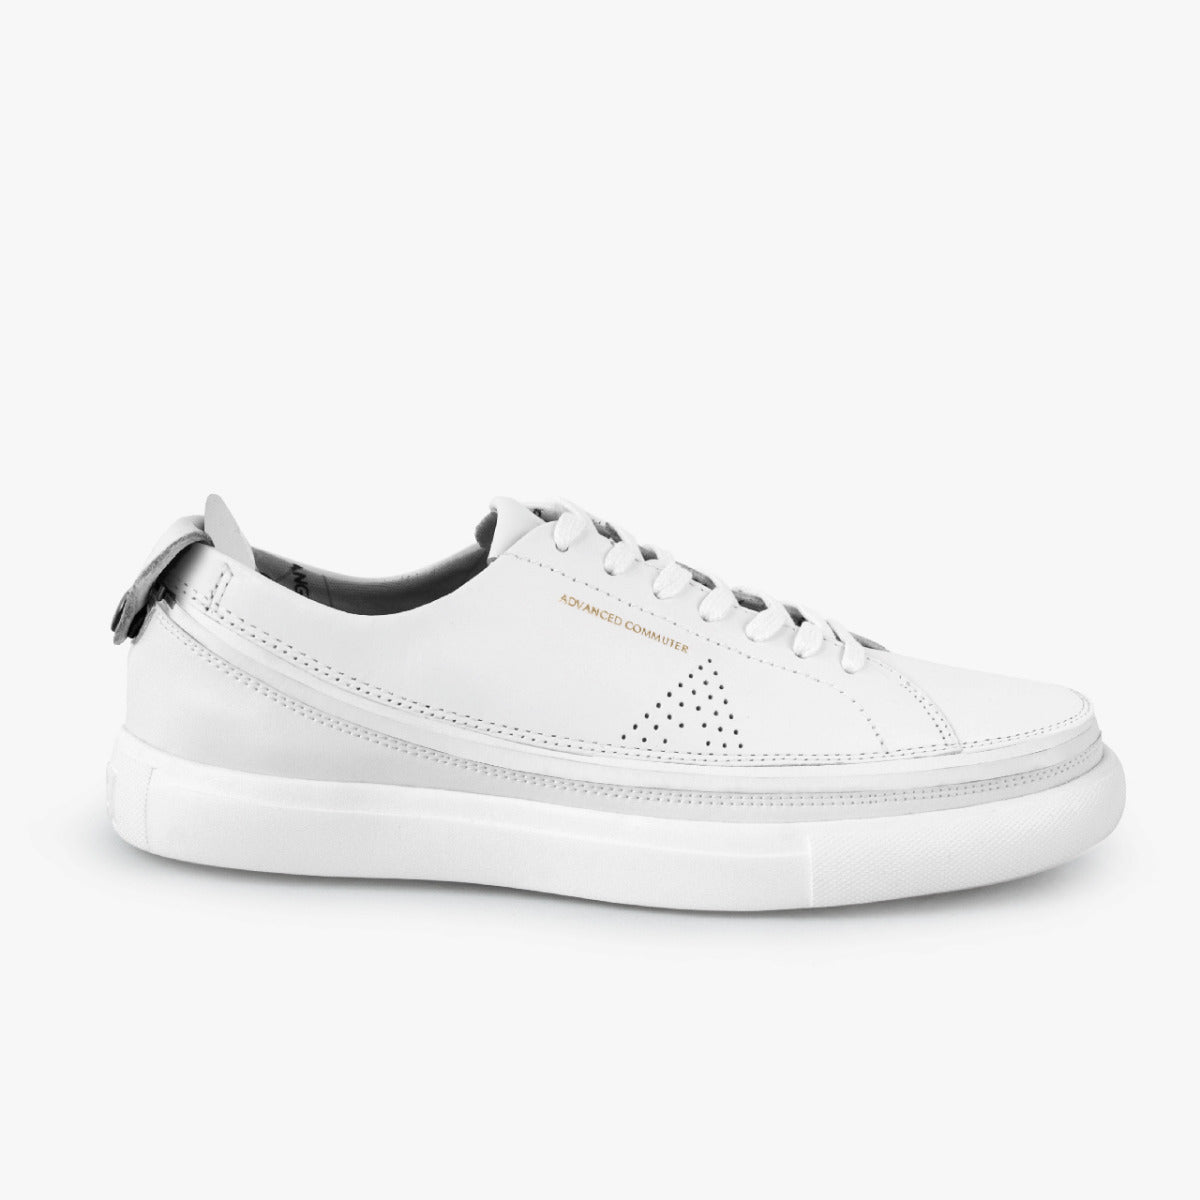 Urban White Sole